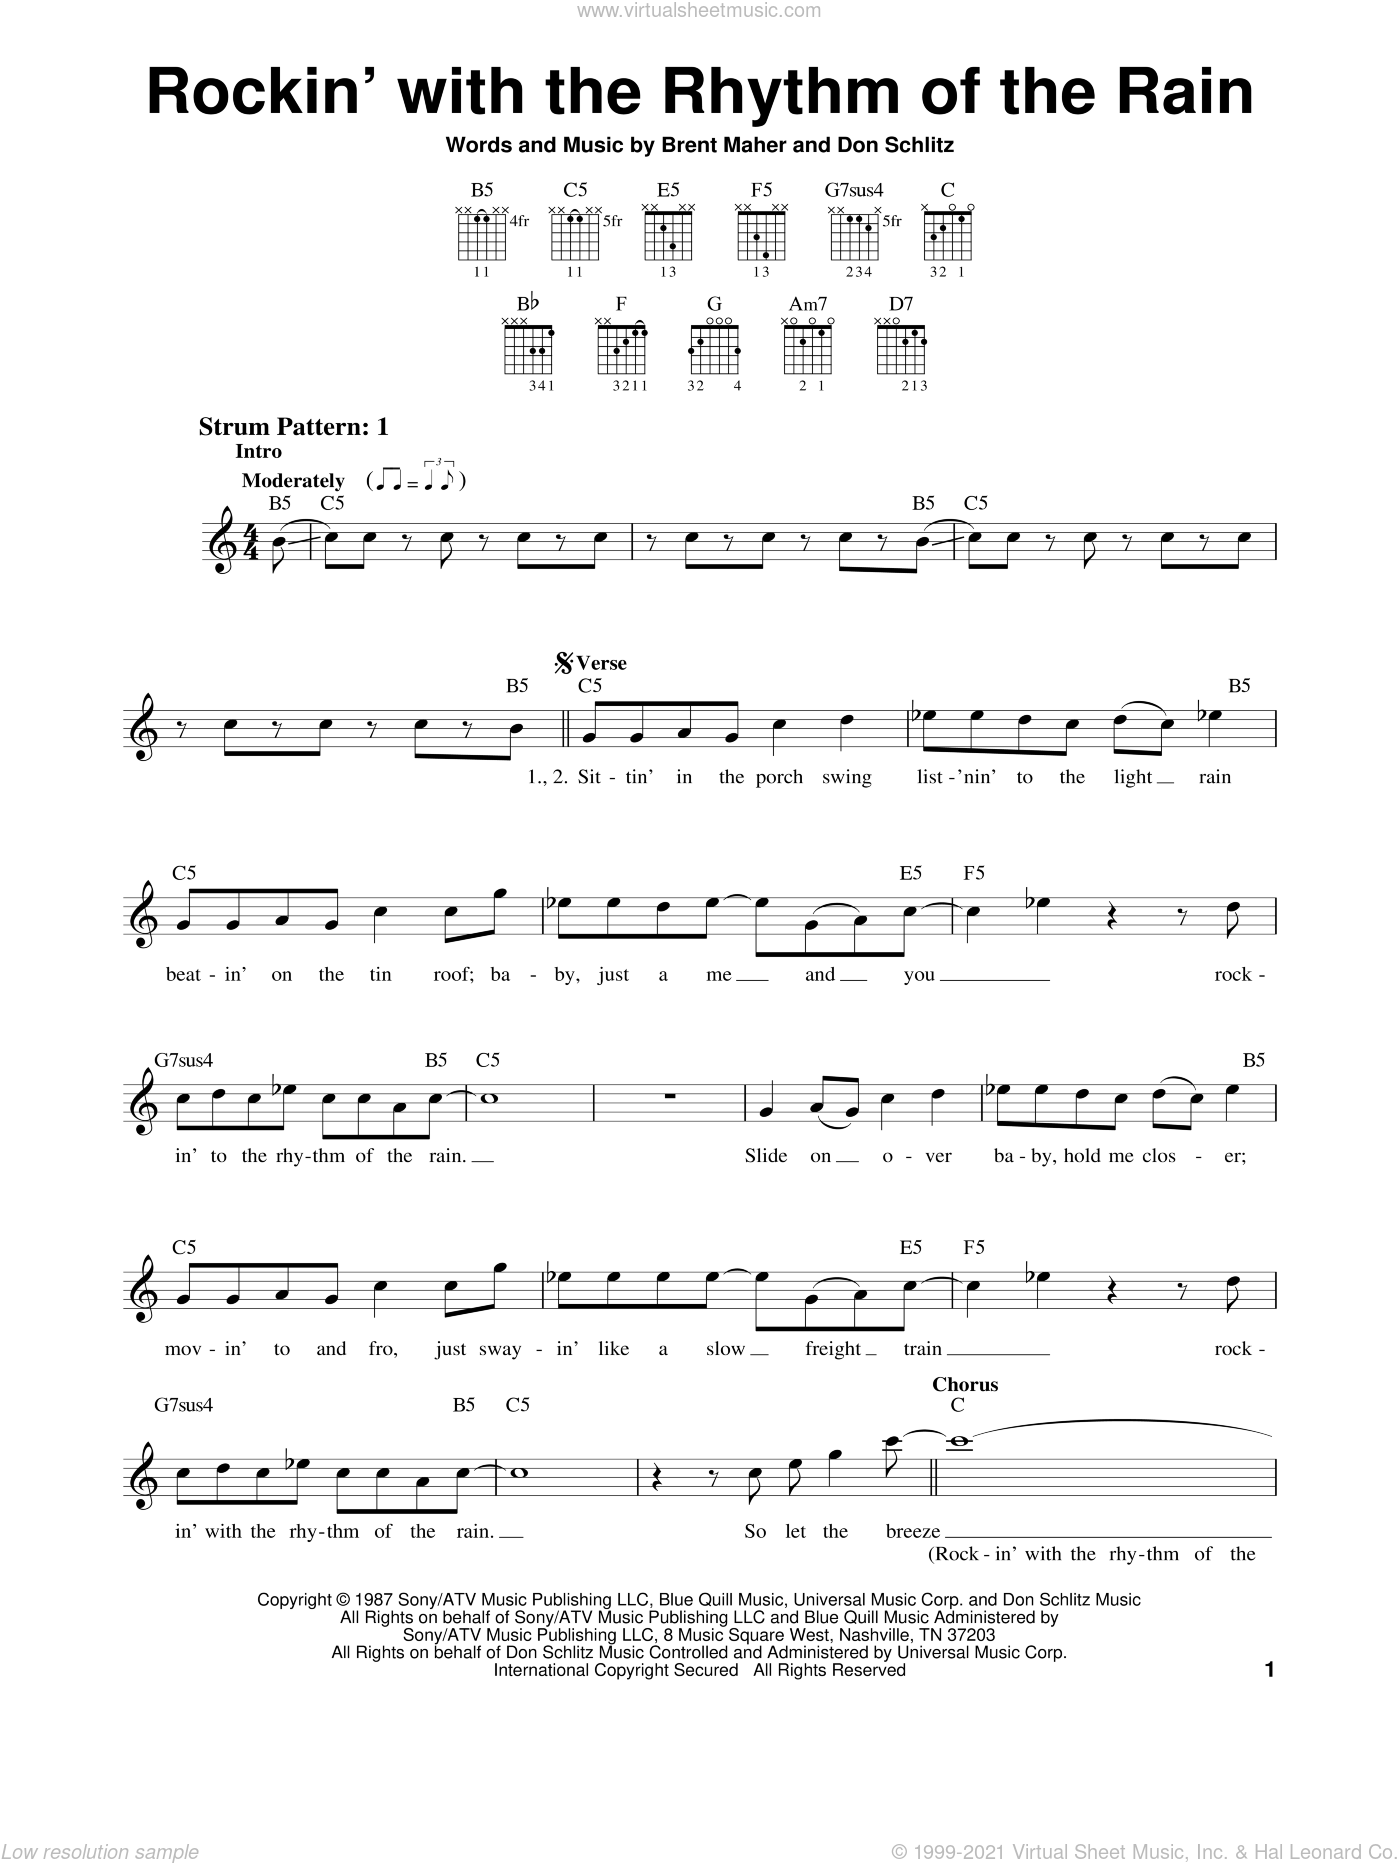 Rockin' With The Rhythm Of The Rain sheet music for guitar solo (chords) by Don Schlitz